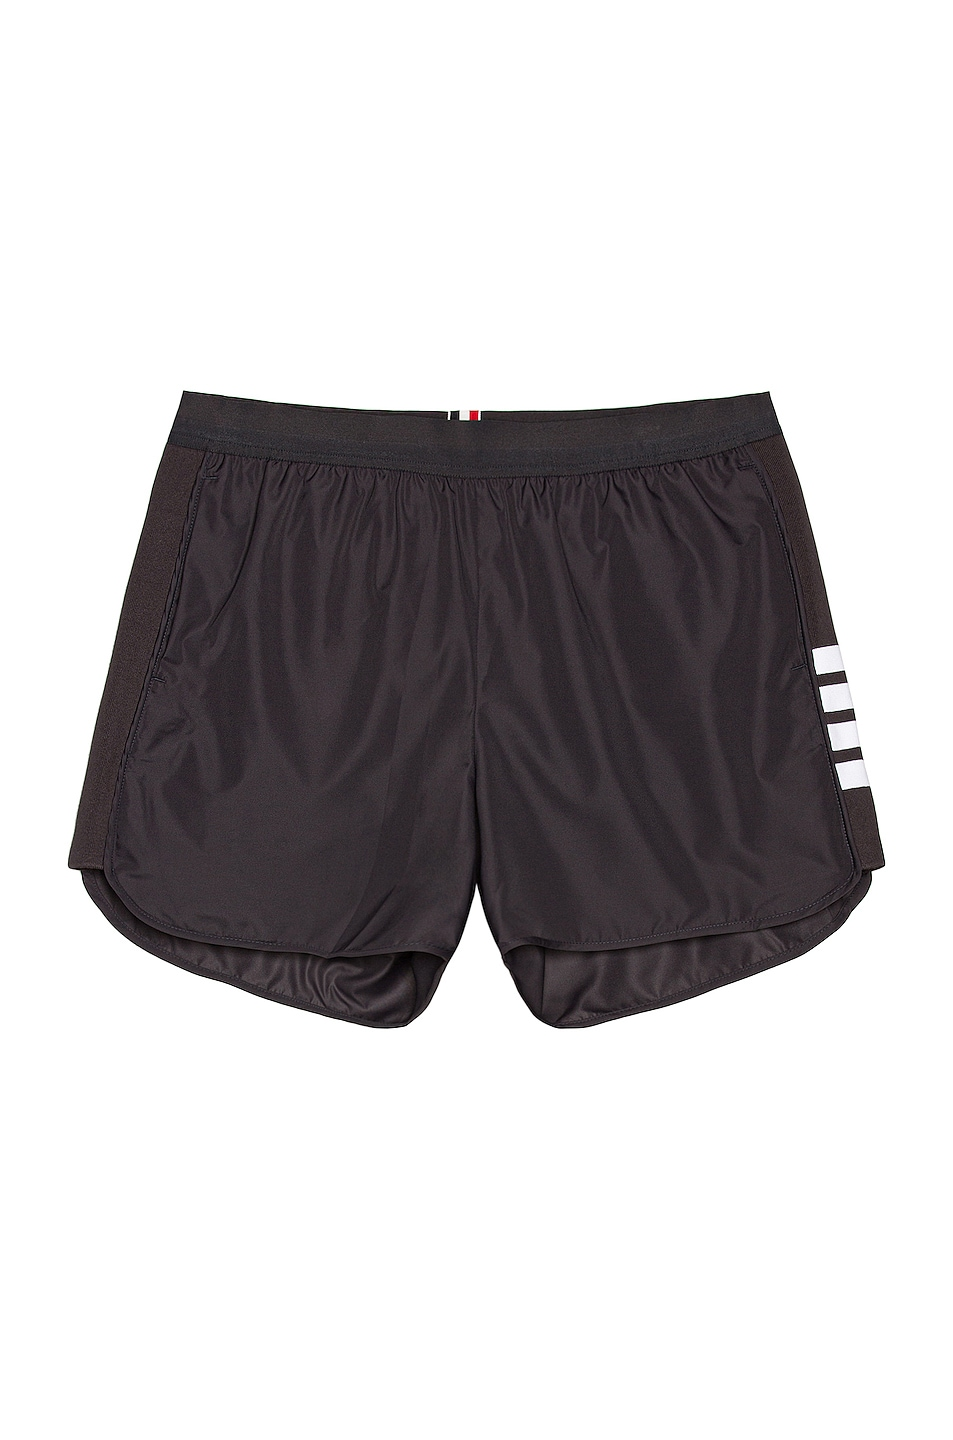 Image 1 of Thom Browne Running Shorts in Charcoal